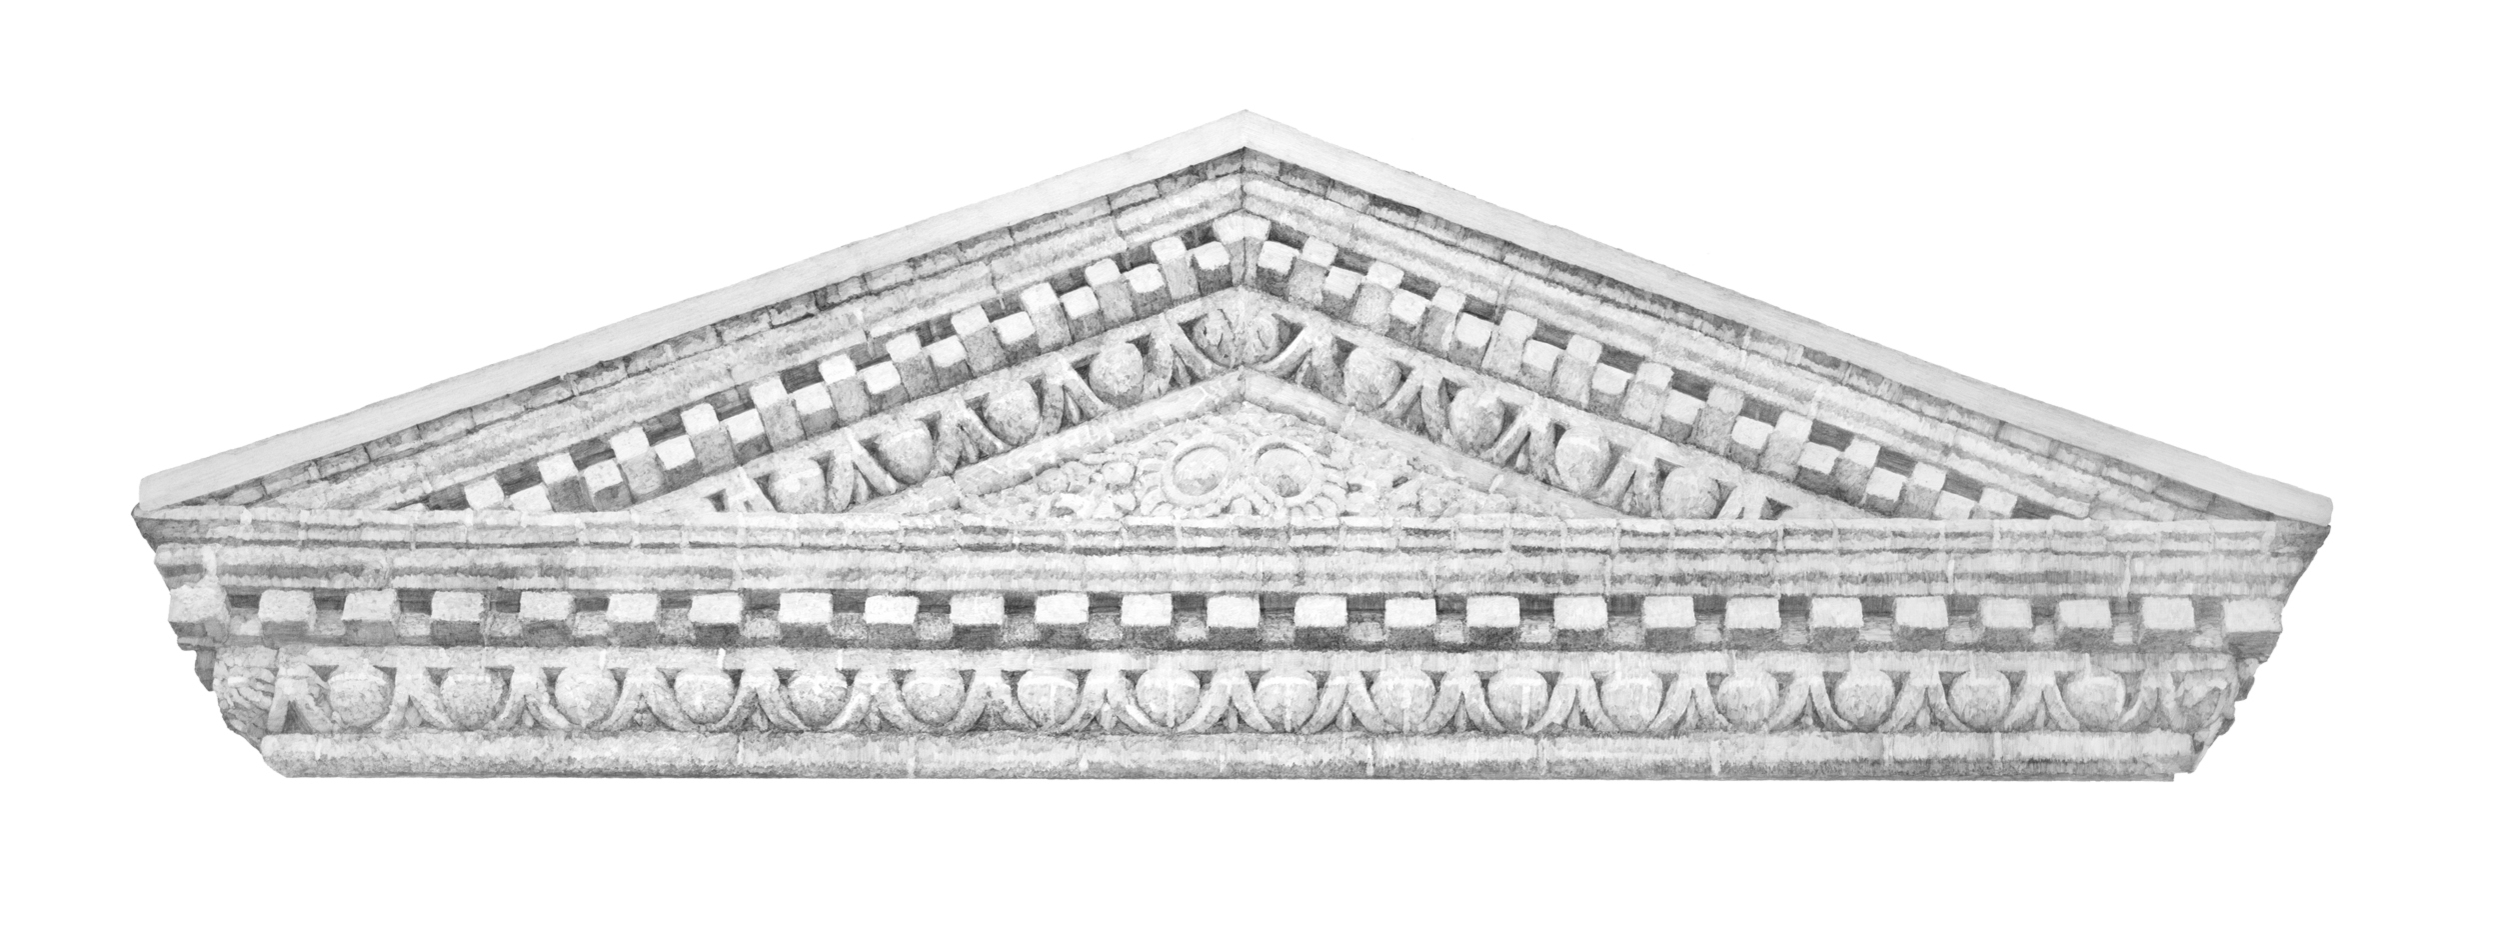 "Harvard Facade  Graphite on paper  22"" x 60""  Sold, Private Collection"